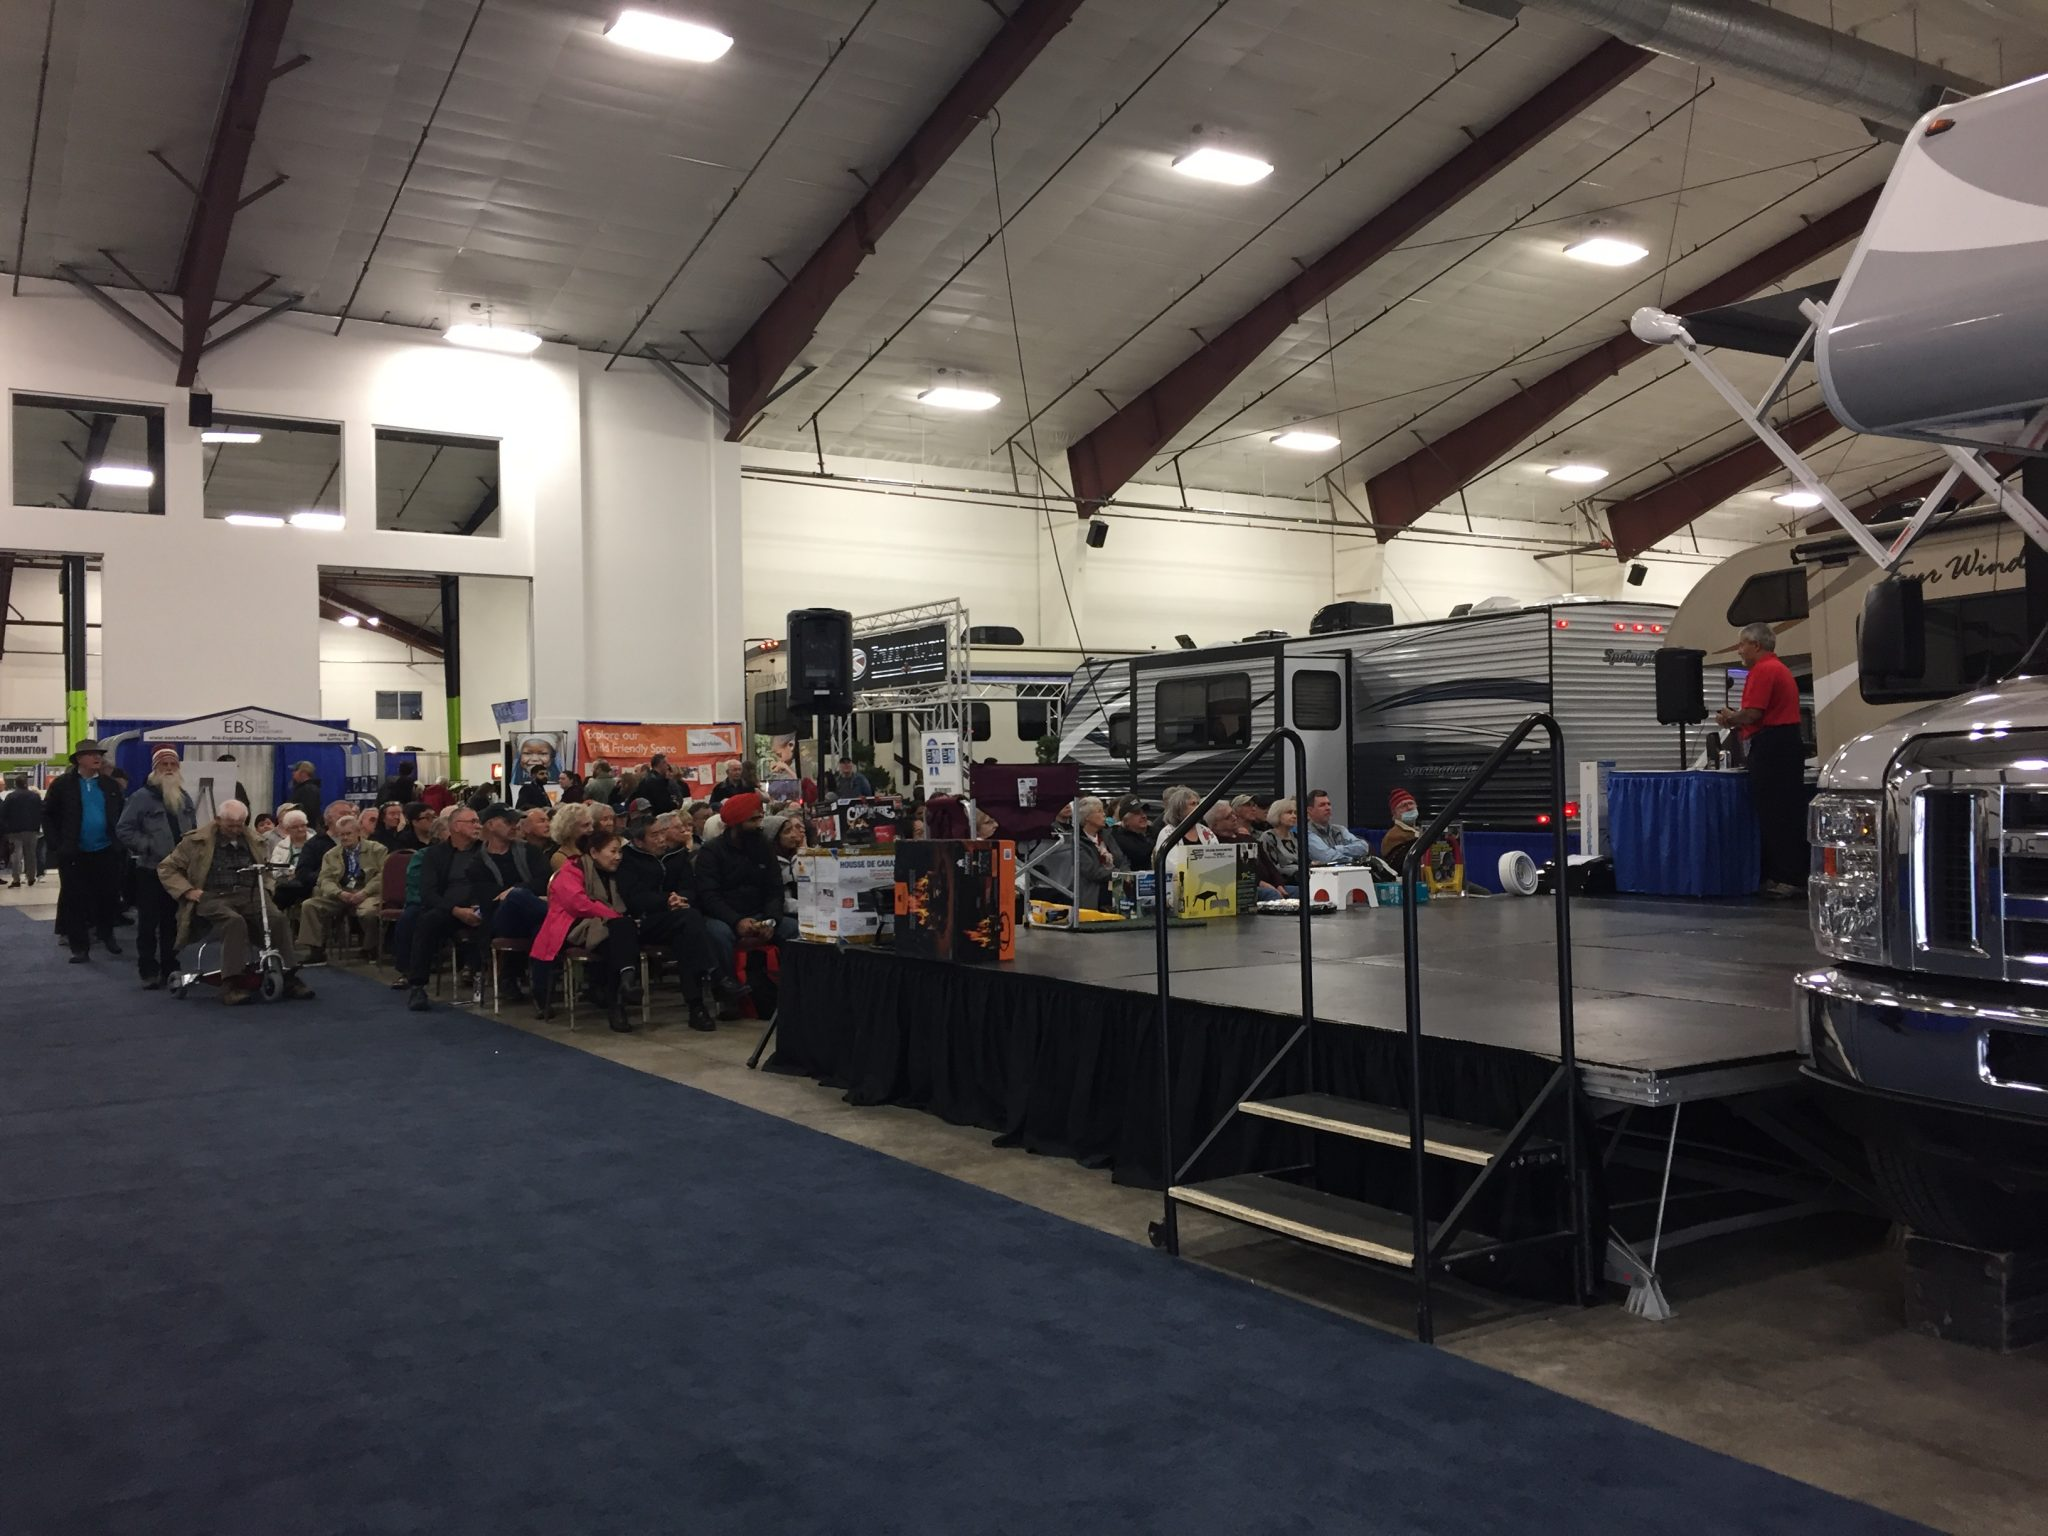 2019 Earlybird RV Show & Sale Returns to Tradex in Abbotsford